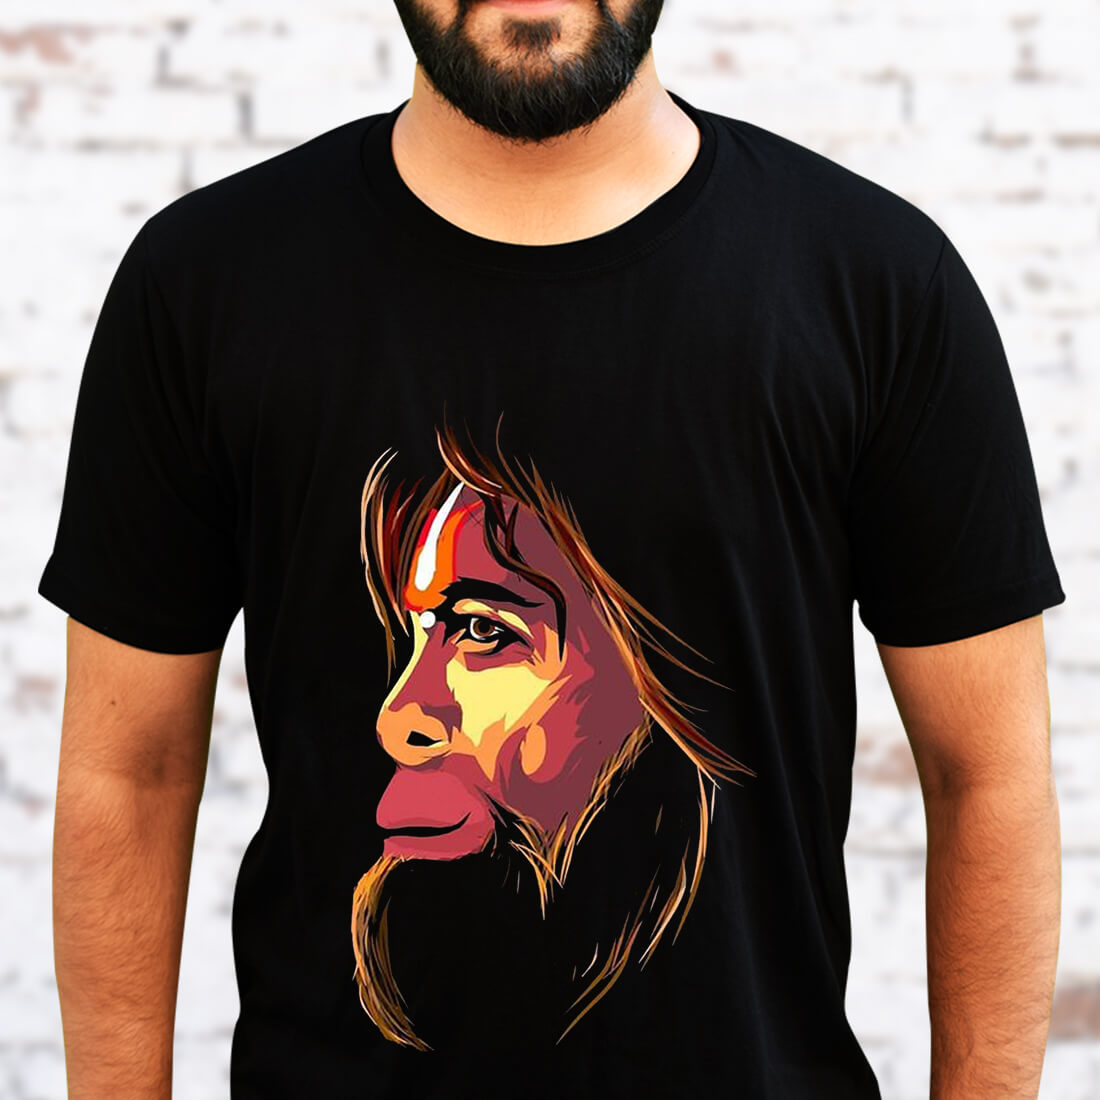 Monkey King Printed Black T Shirt Front and Back